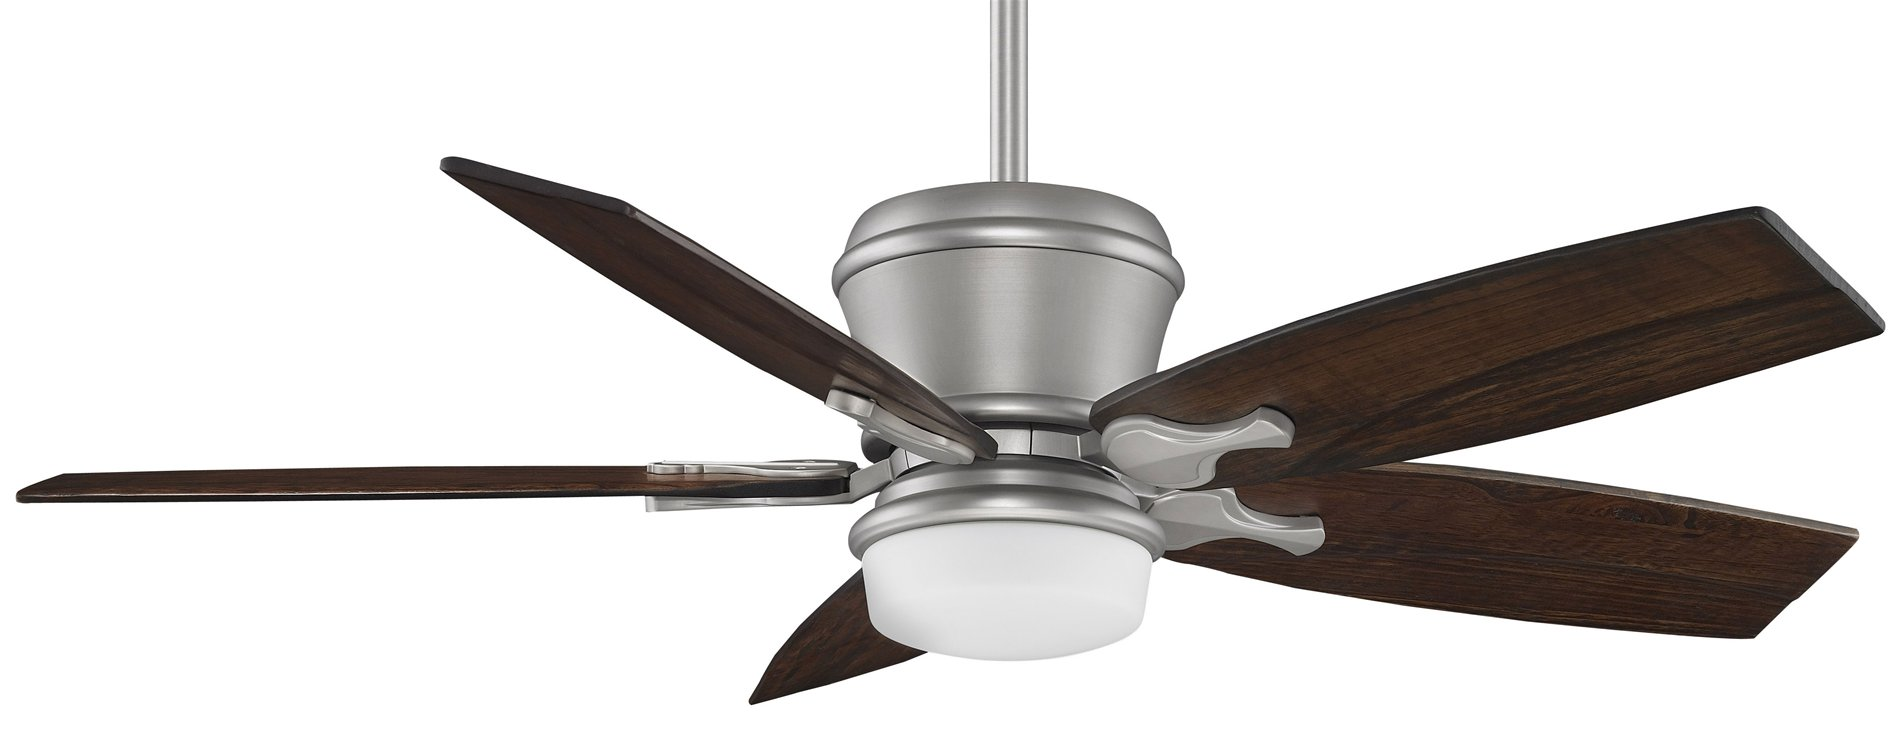 Fanimation MAD3260 Sandella DC Motor Tropical Ceiling Fan